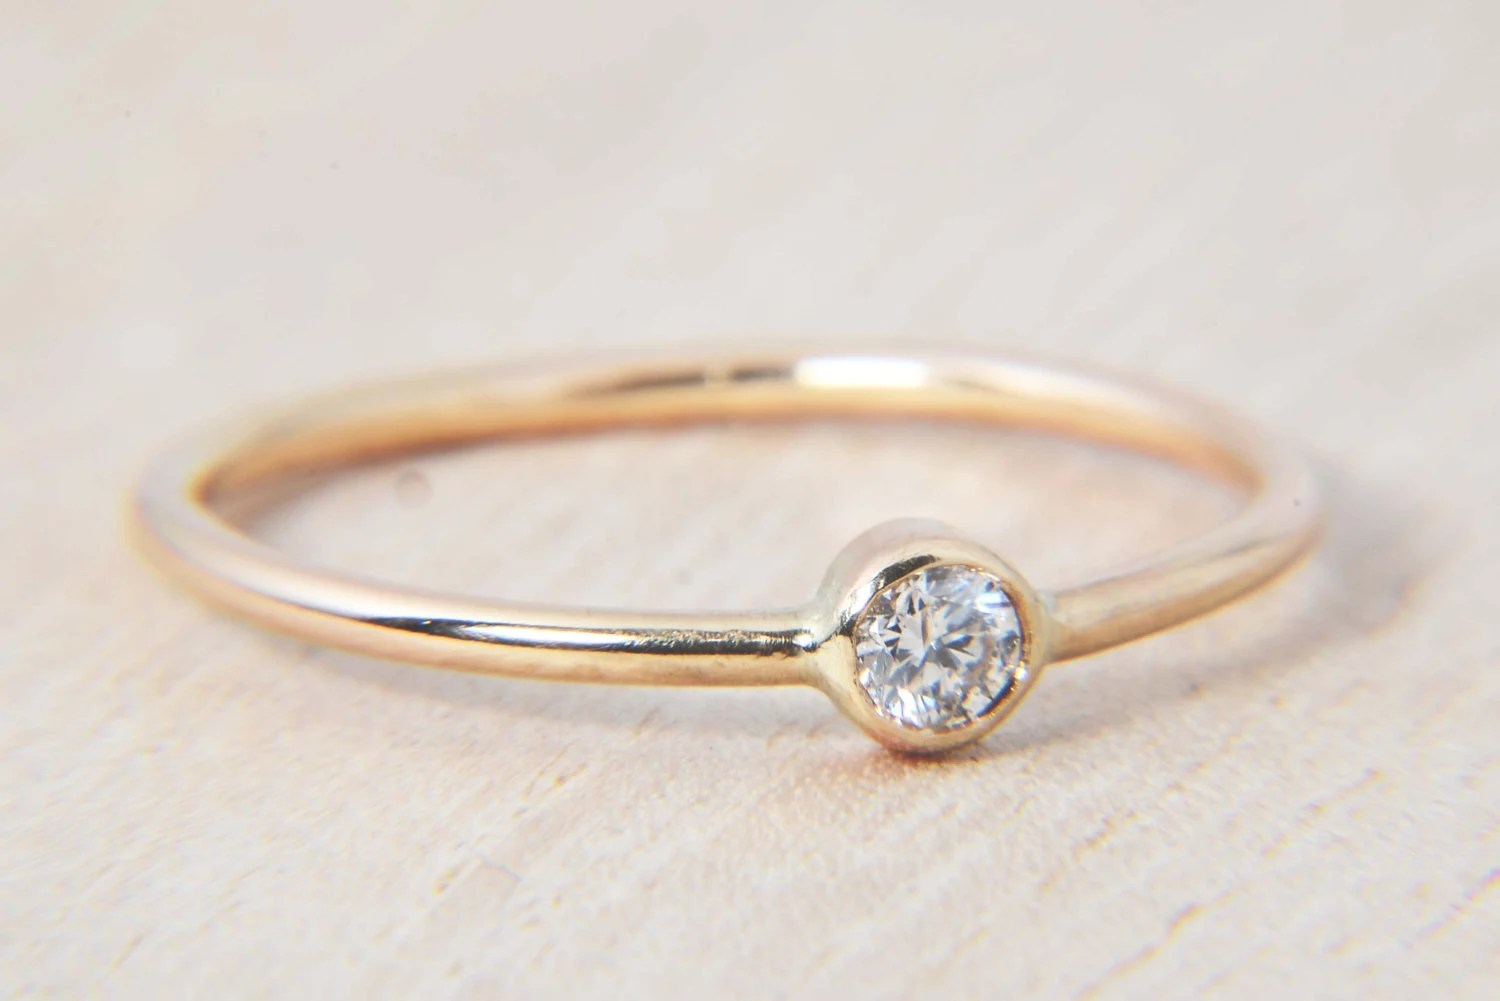 simple 11ct diamond ring in 14k gold dainty wedding bands zoom